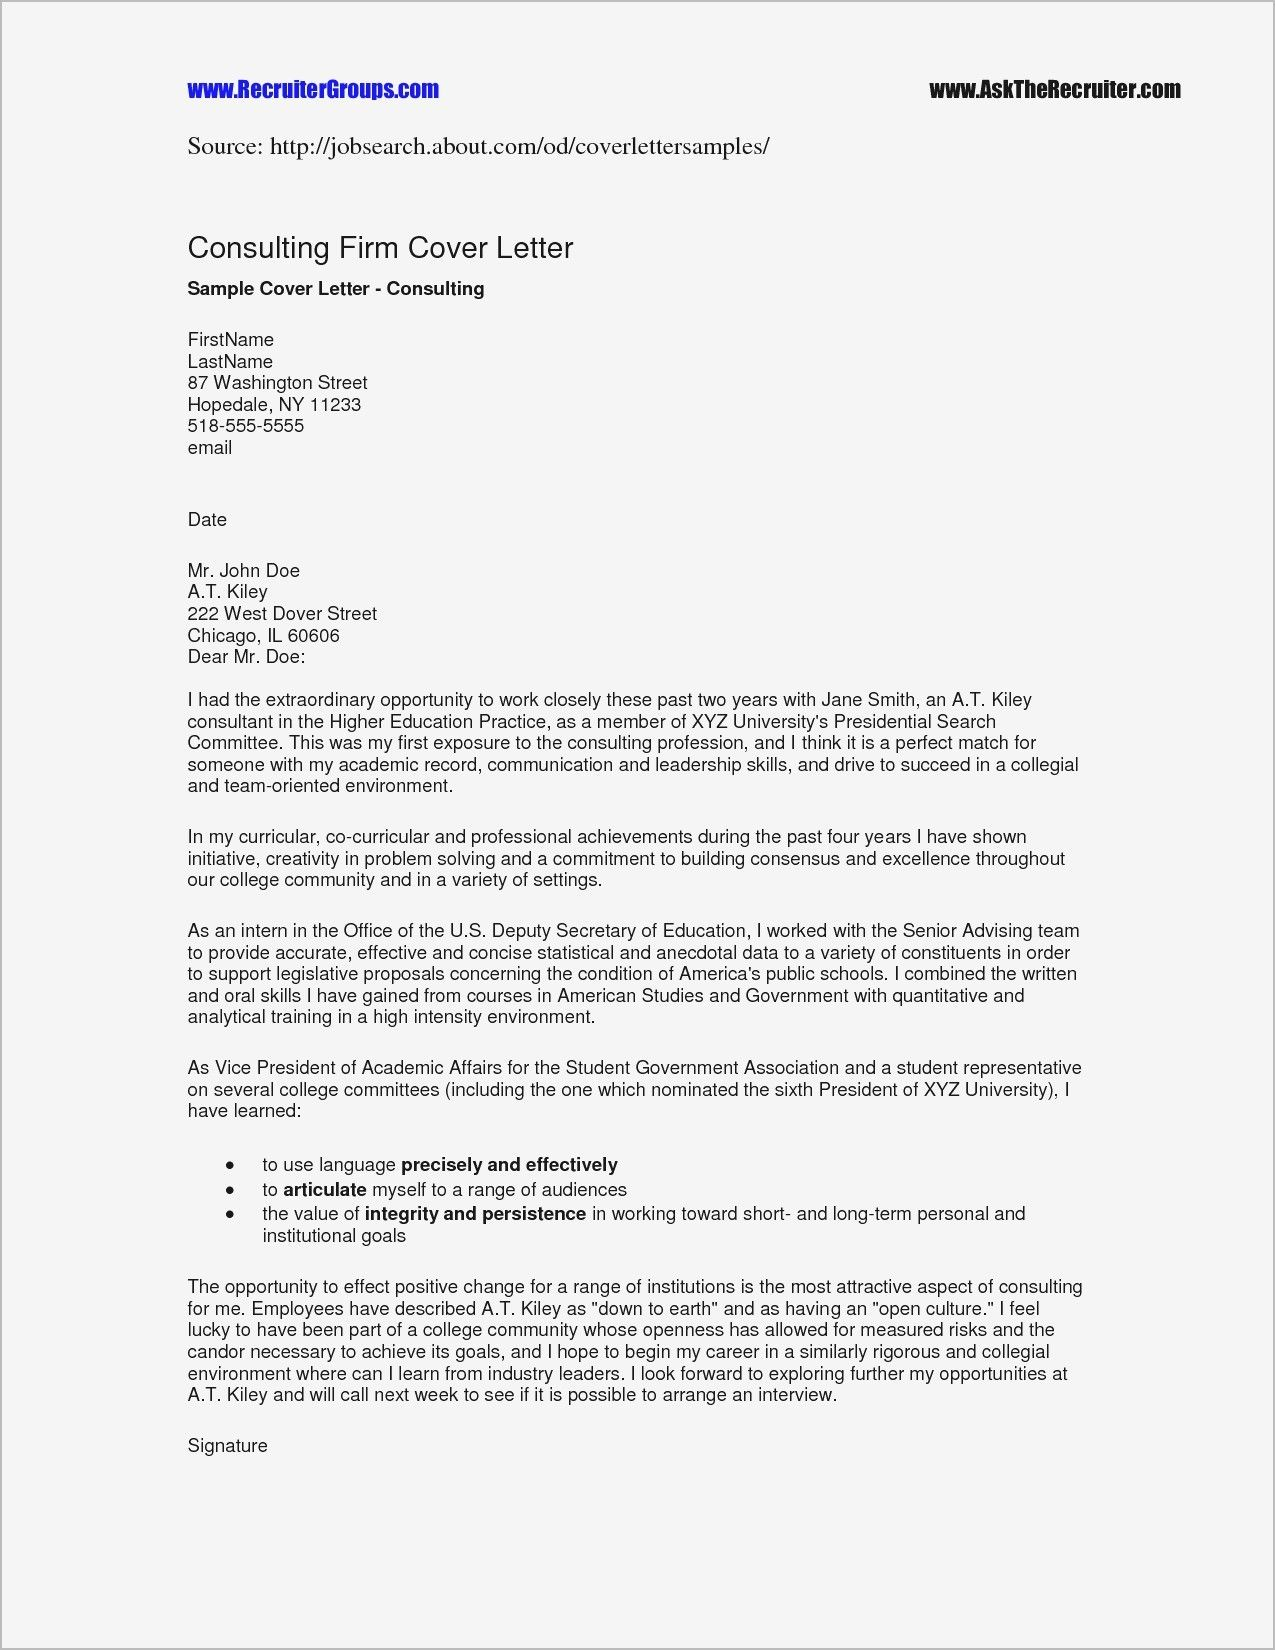 Email Cover Letter Template Uk Resume Examples Cover Letter Sample Cover Letter For Resume Job Cover Letter